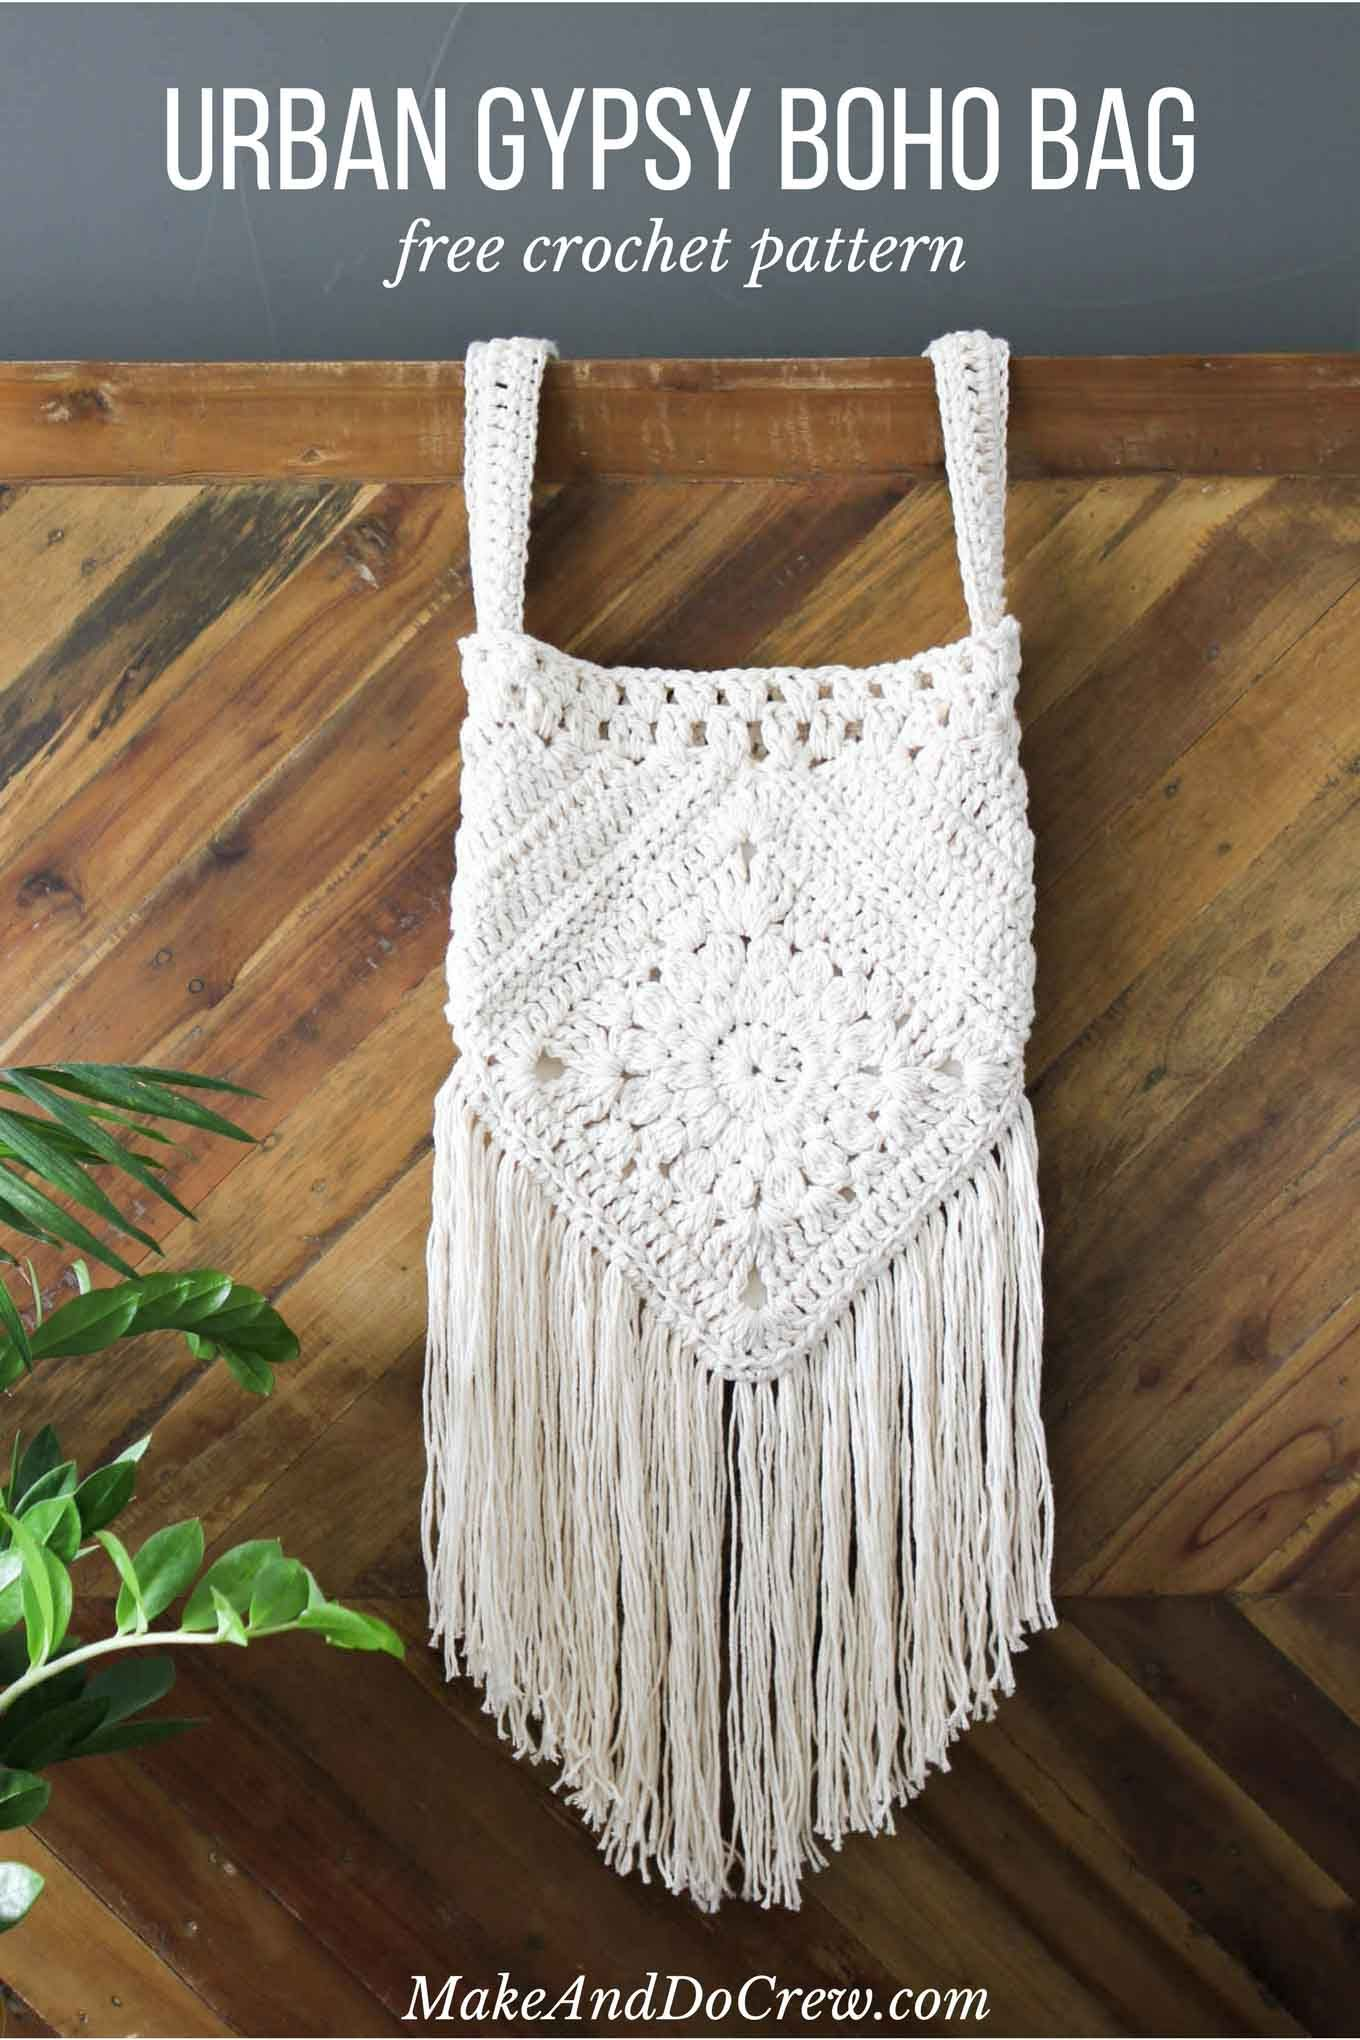 Urban Gypsy Boho Bag – Free Crochet Pattern | Morral, Bolsos y Ganchillo